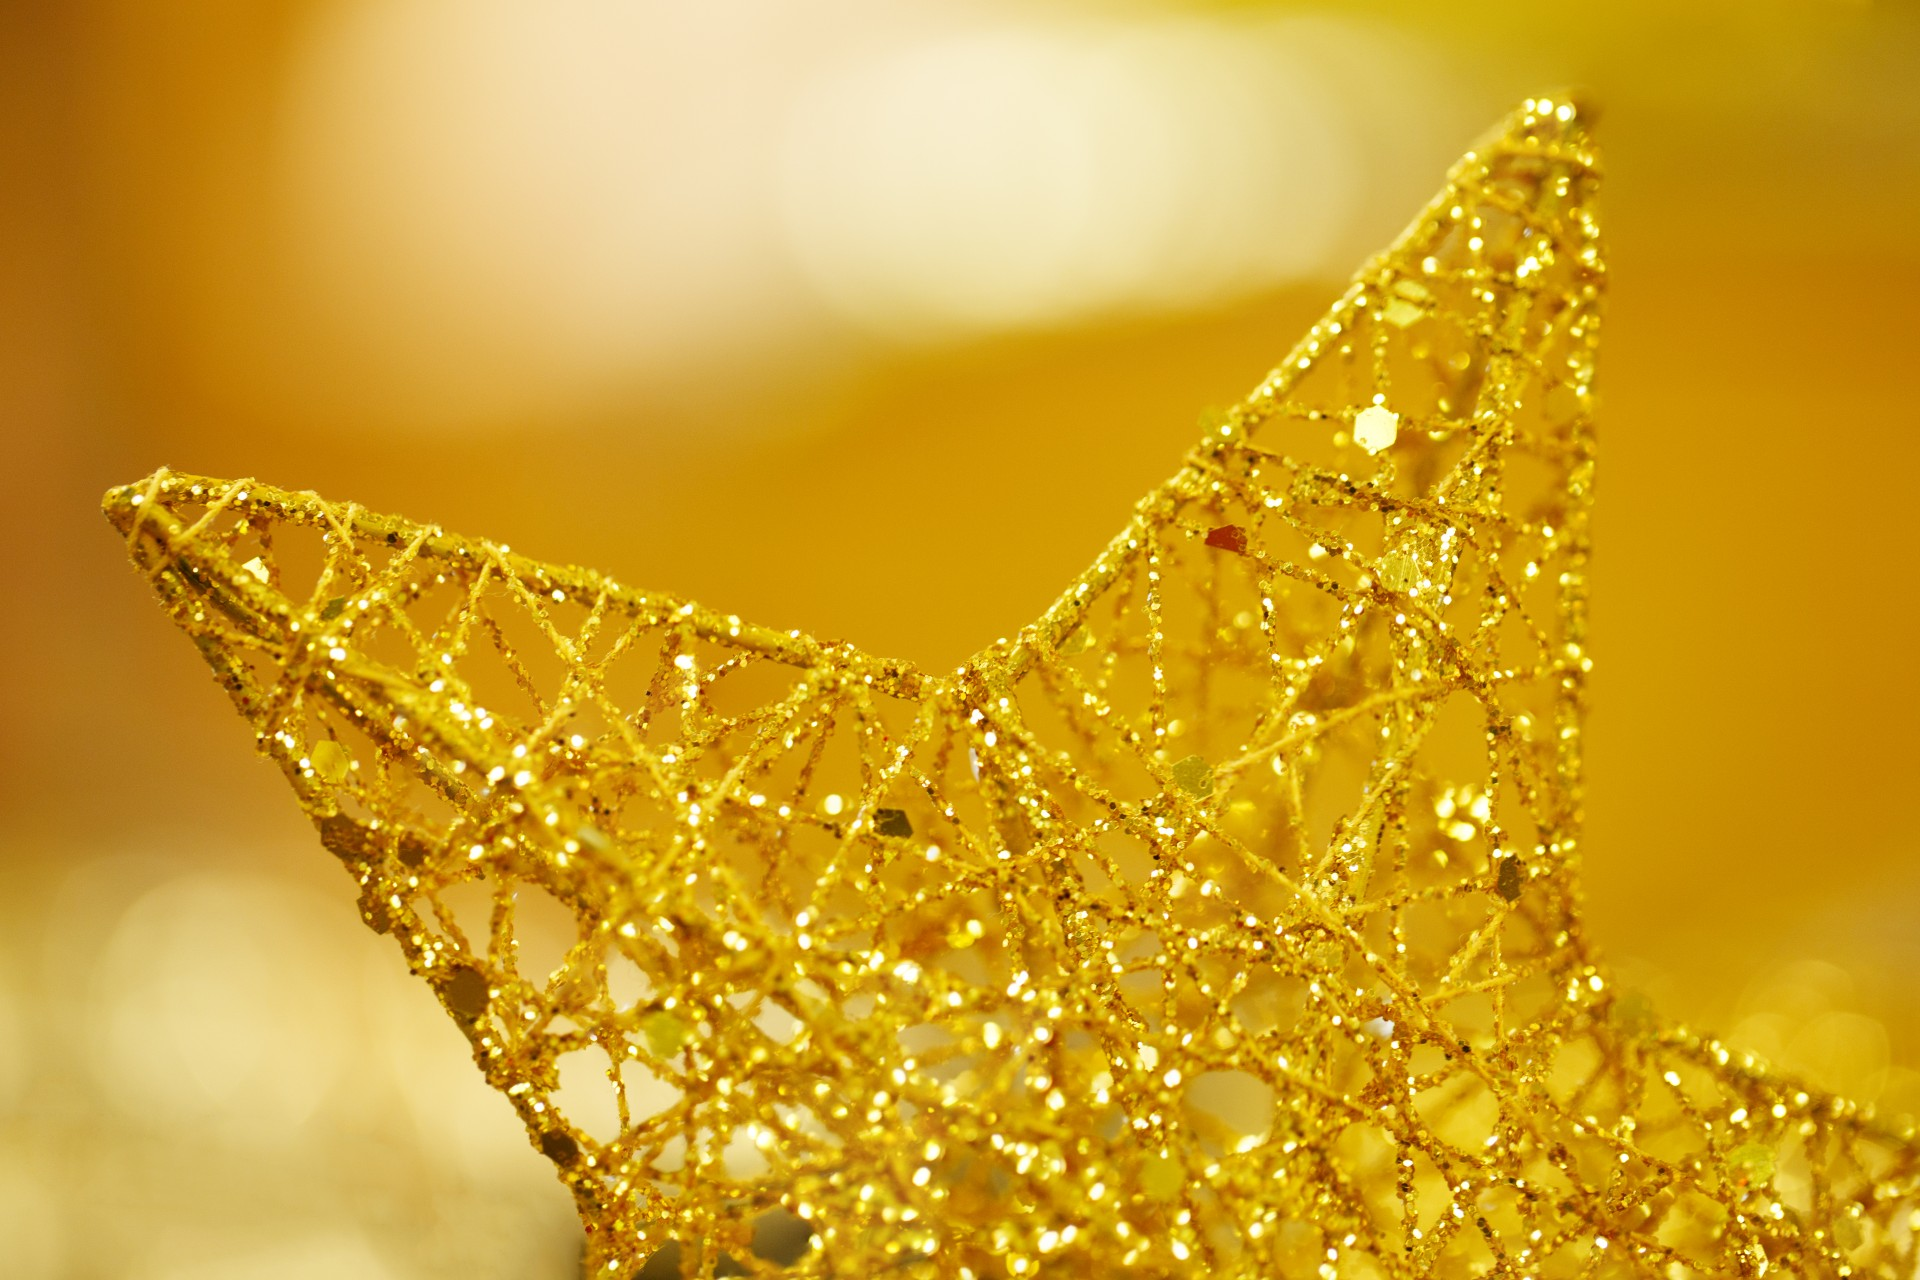 Falling Star Wallpaper Hd Golden Star Free Stock Photo Public Domain Pictures